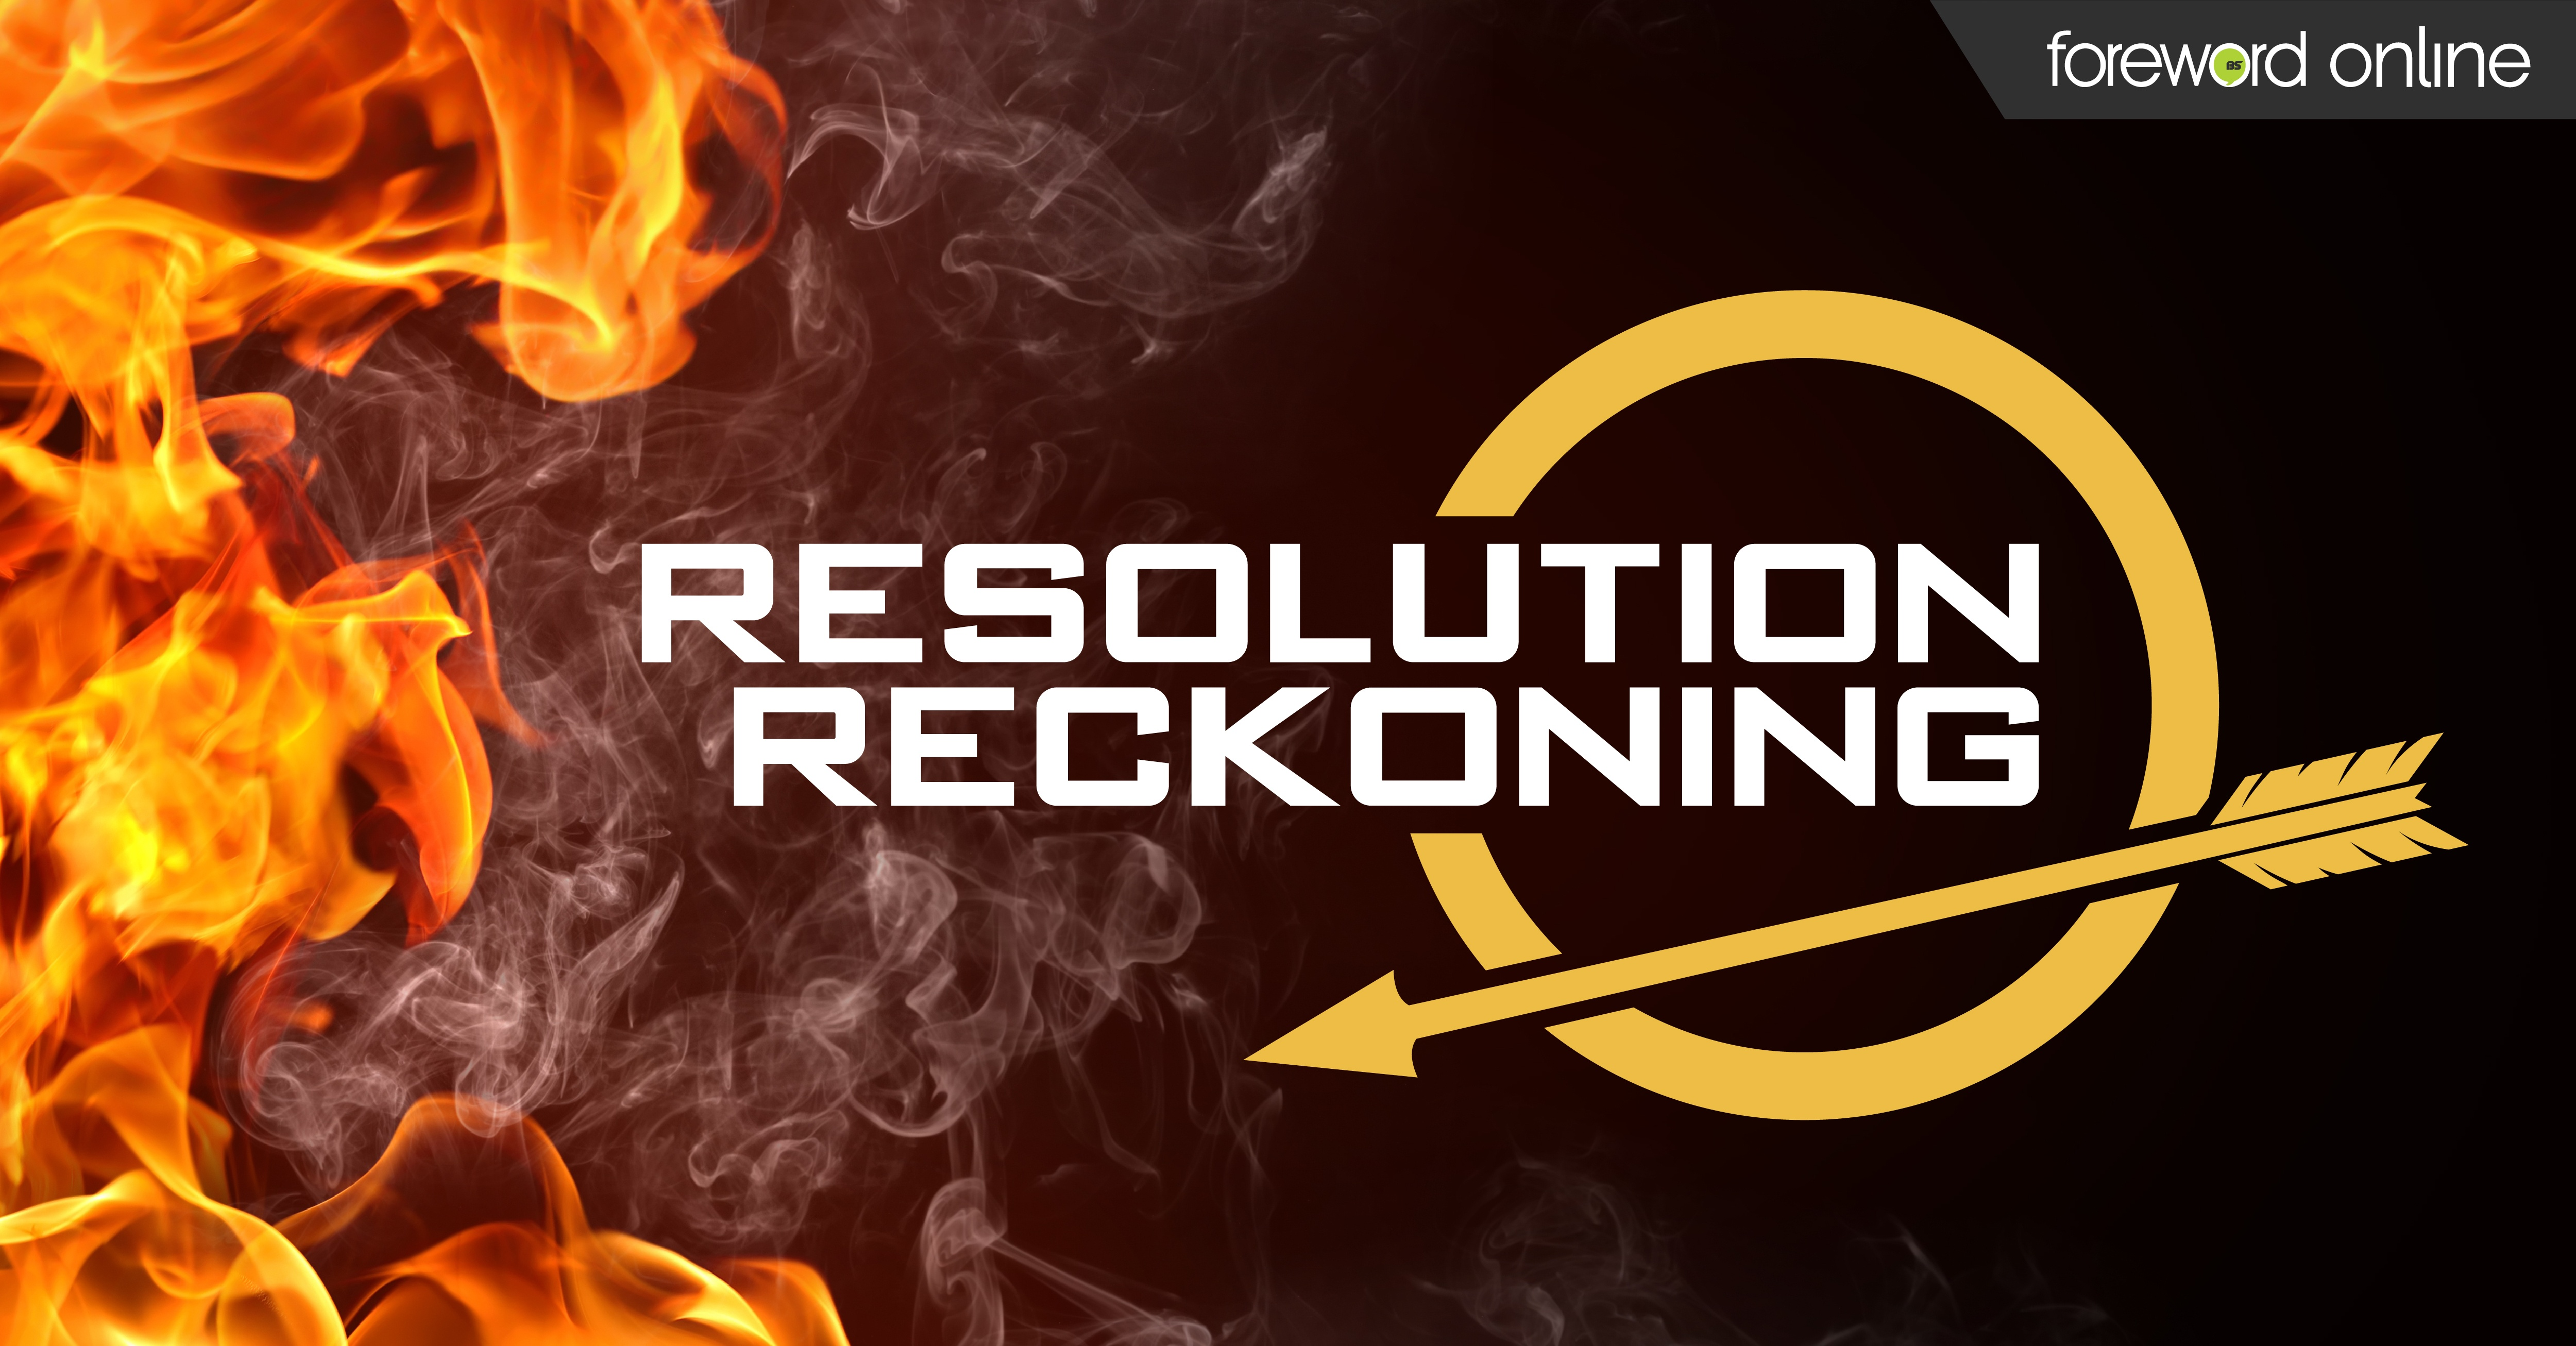 The Resolution Reckoning: December Monthly Marketing Plan